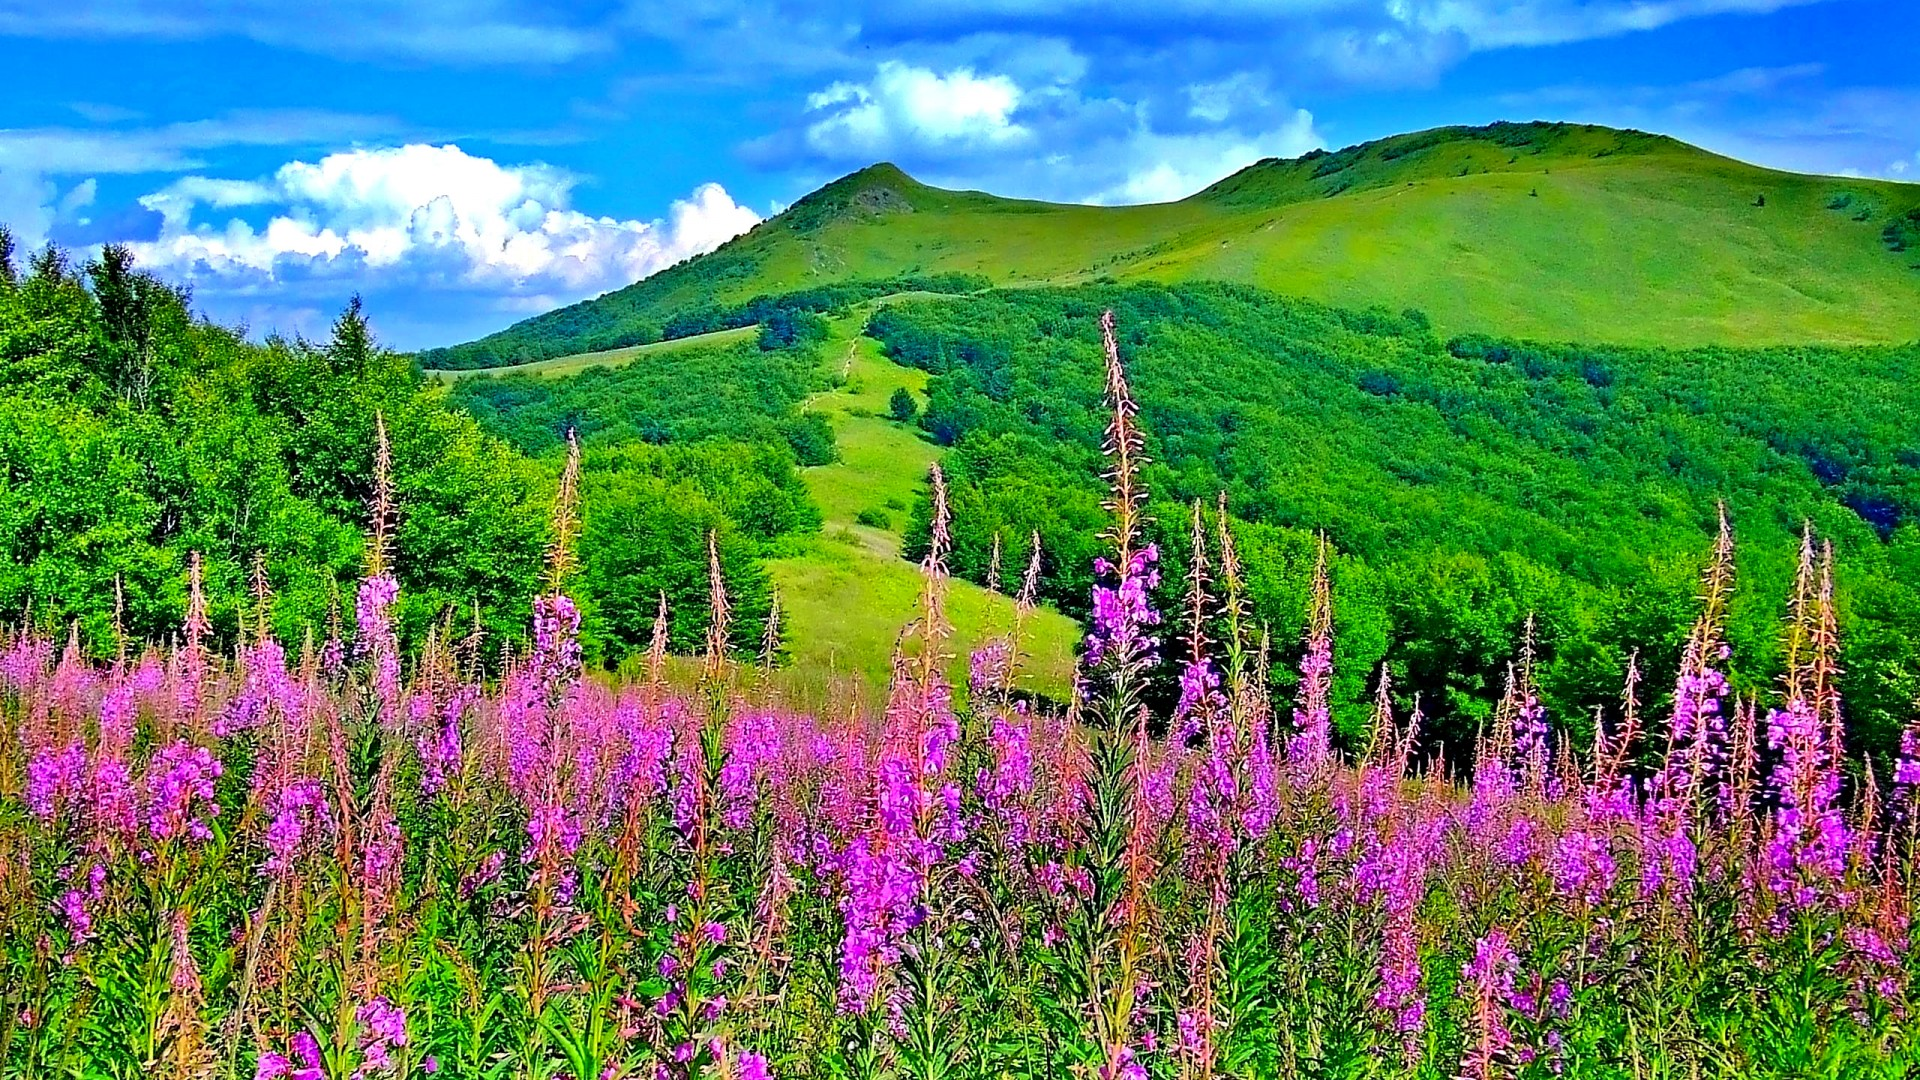 Beautiful Picturesque Scenery With Wonderful Pink Flowers Hd Wallpapers